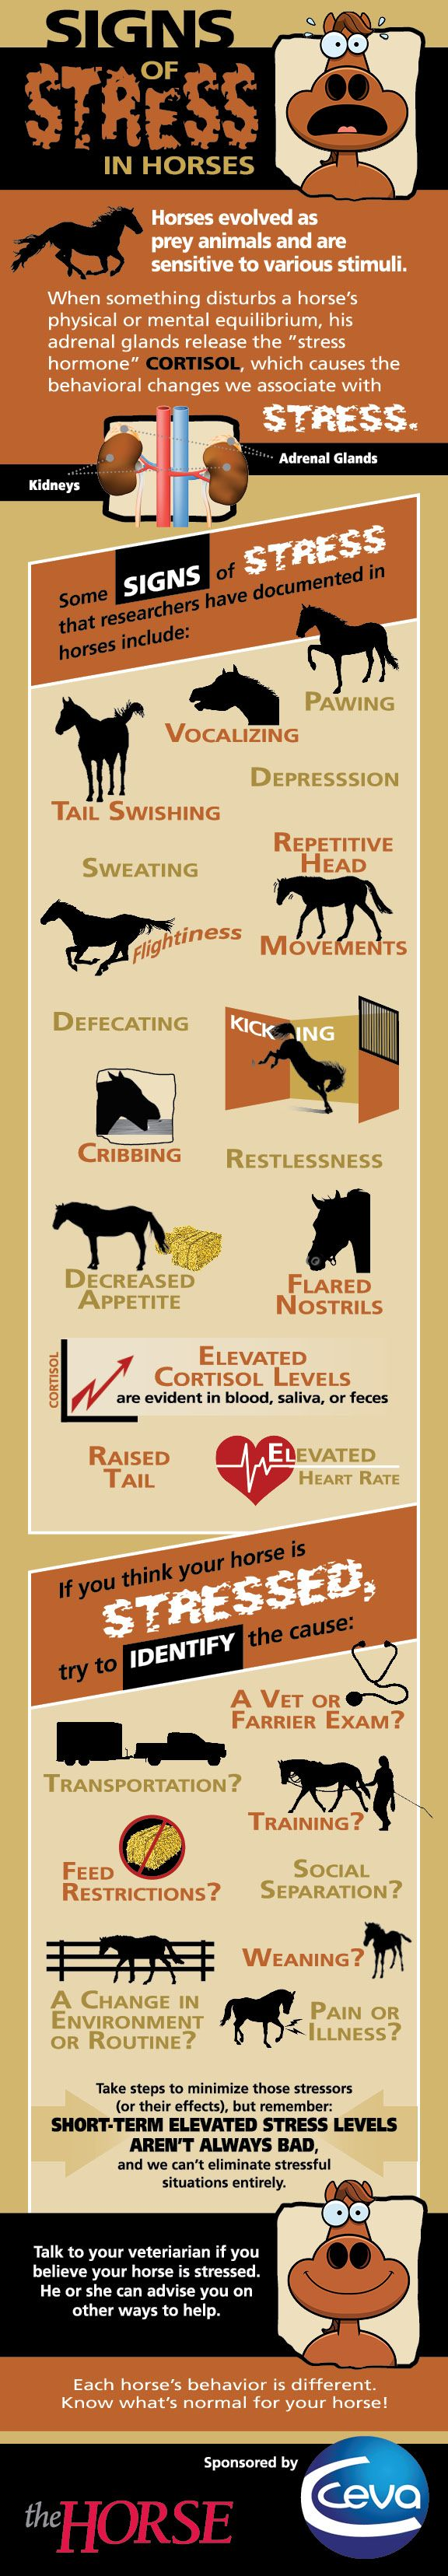 Signs of Stress in Horses - TheHorse.com | Learn about the common signs your horse might show when under stress and ways to mitigate the possible causes using this new infographic from TheHorse and CEVA.